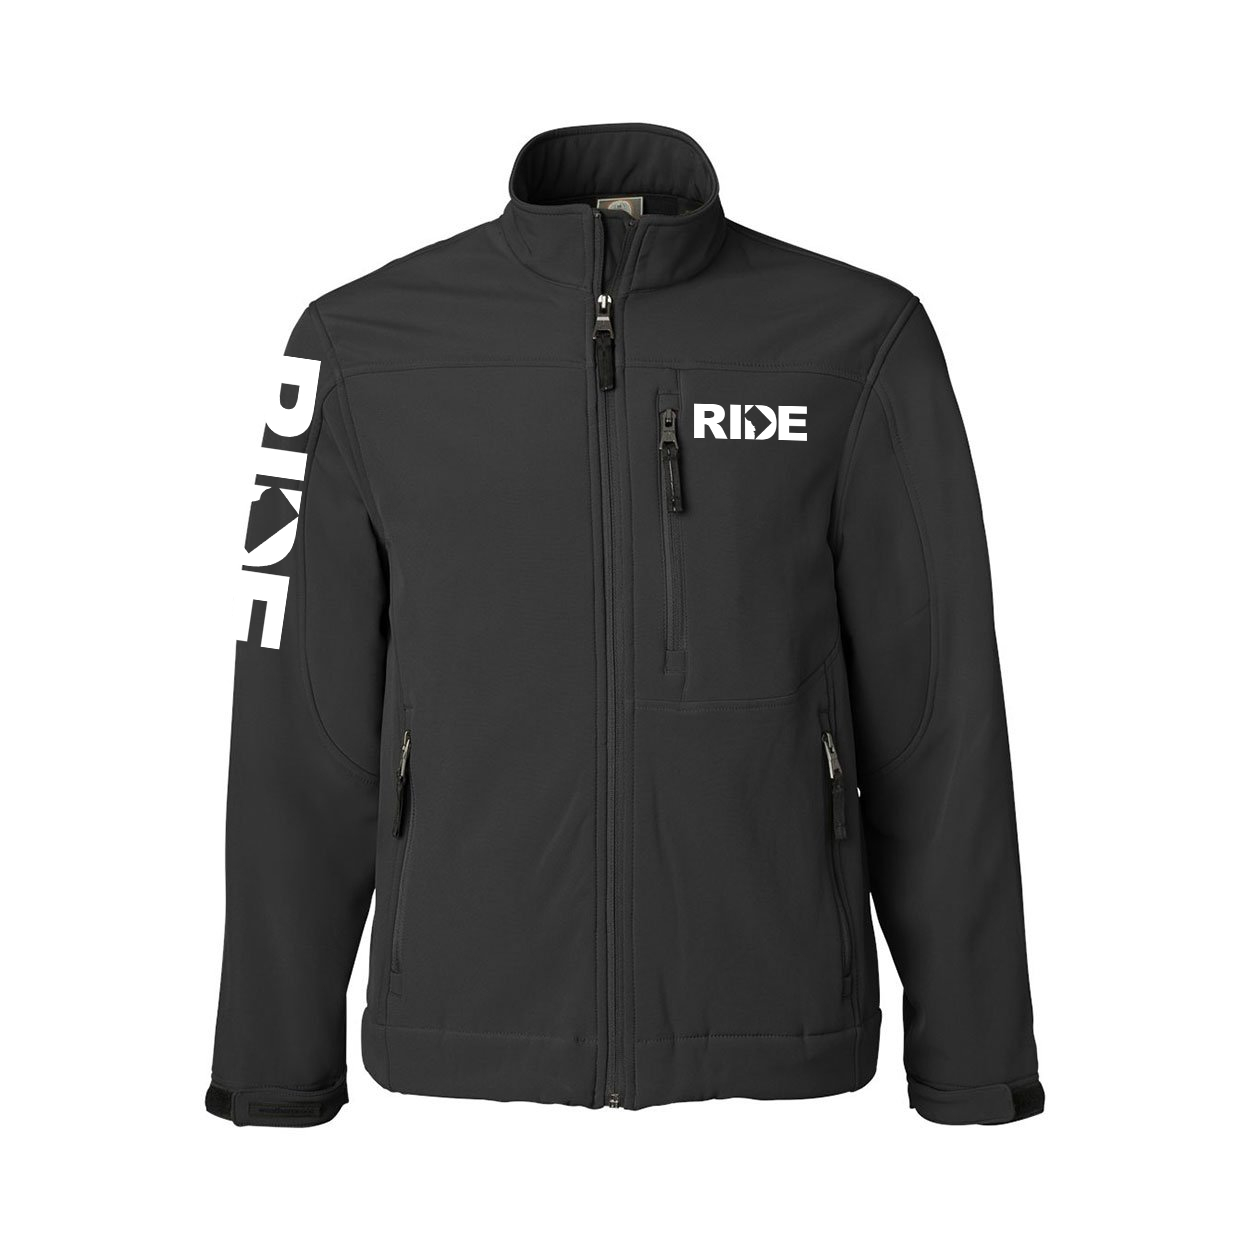 Ride District of Columbia Classic Soft Shell Weatherproof Jacket (White Logo)